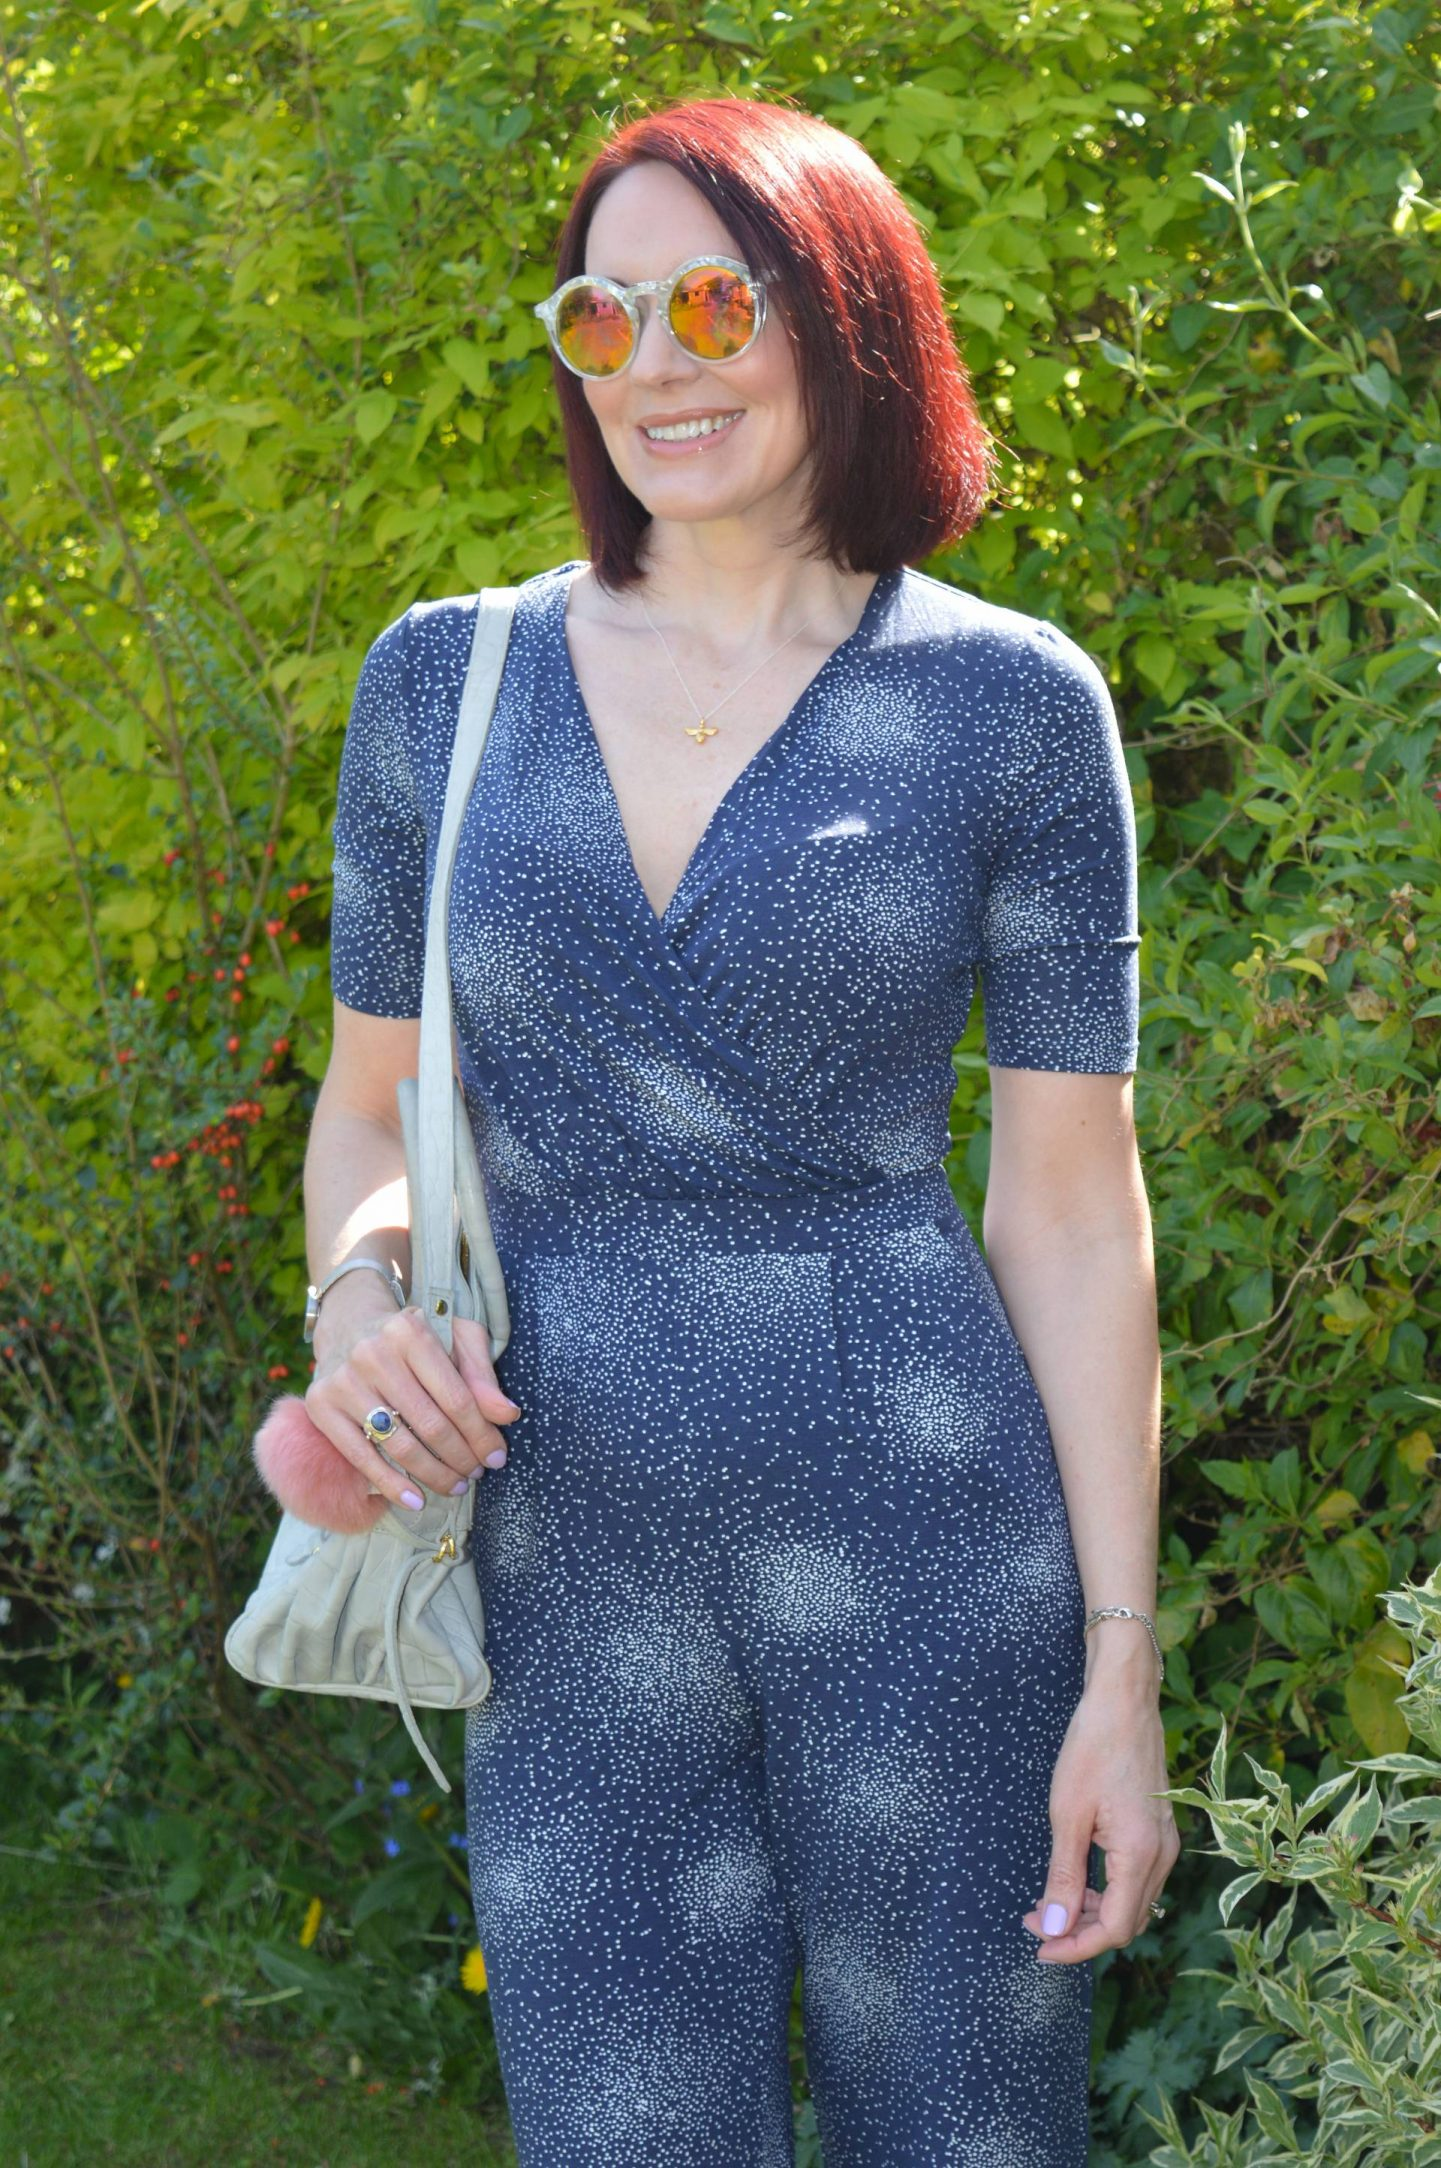 Laura Ashley jumpsuit, Skinny Dip mirrored sunglasses